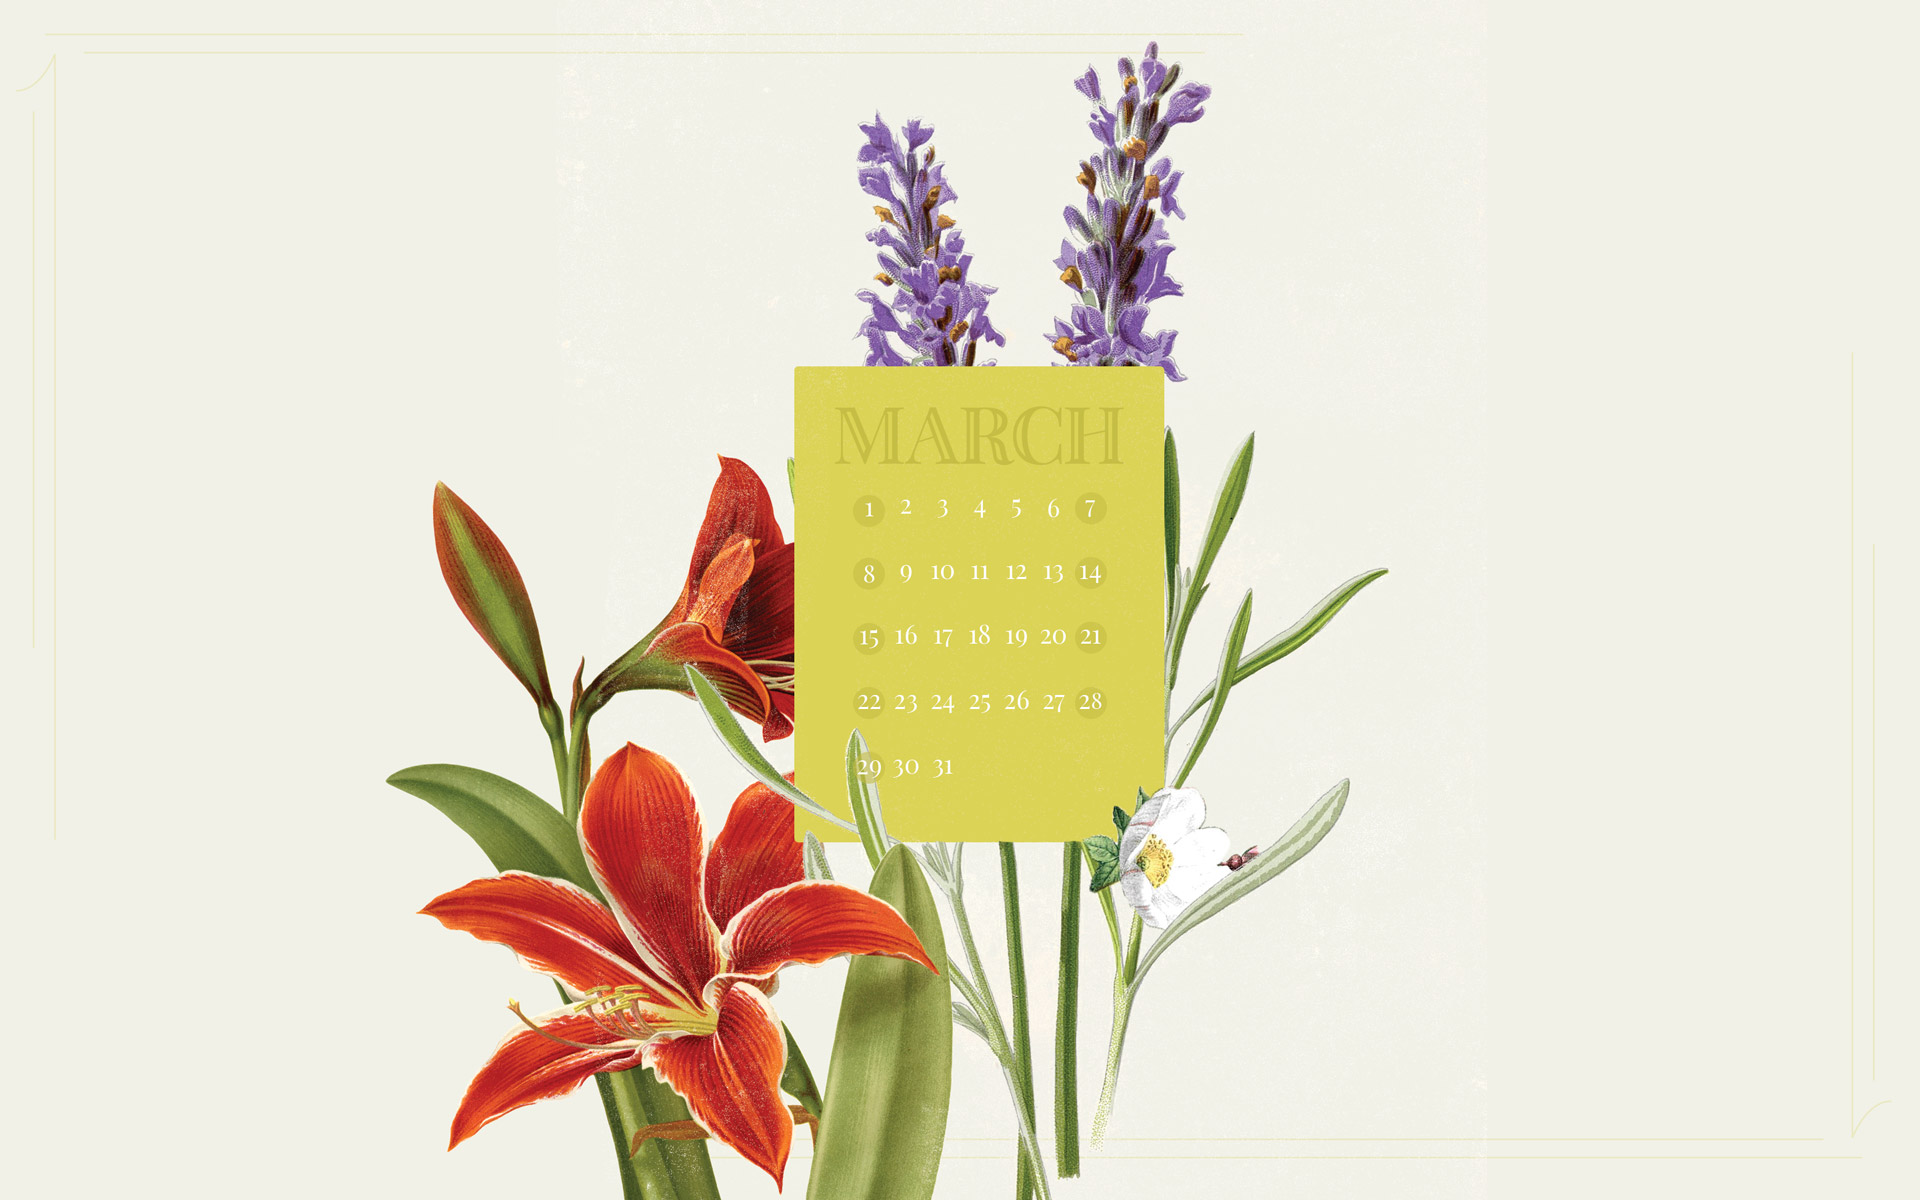 March 2015 Desktop Calendar Wallpaper Paper Leaf 1920x1200